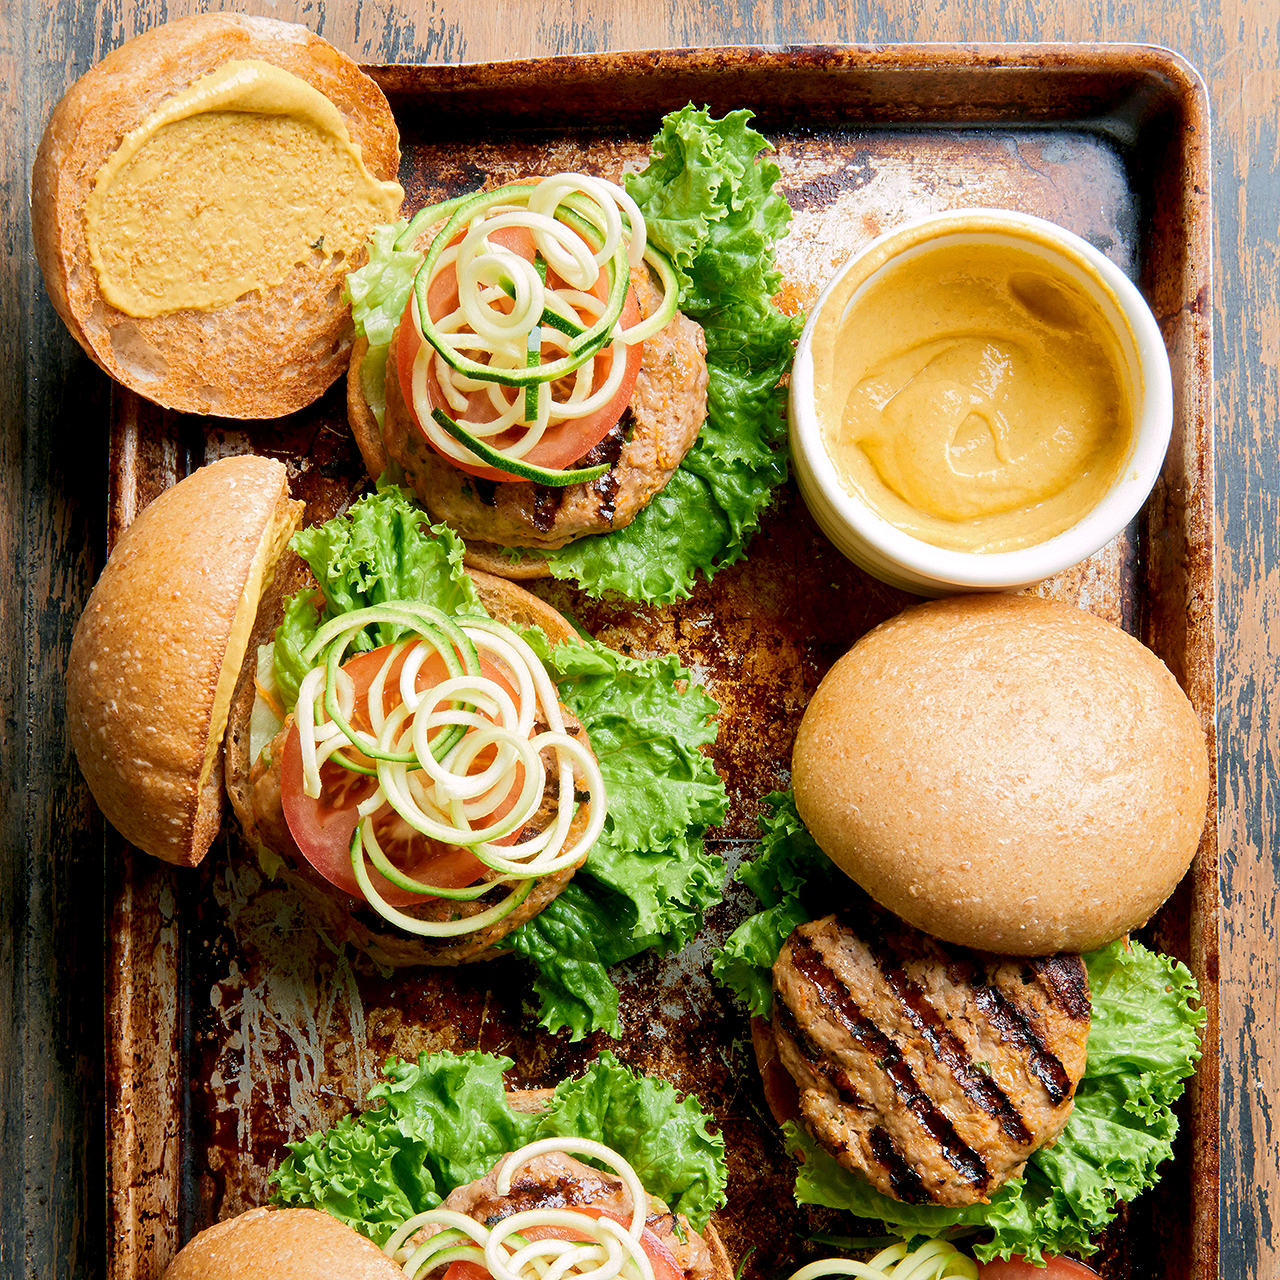 veggie-and-turkey burgers with toppings